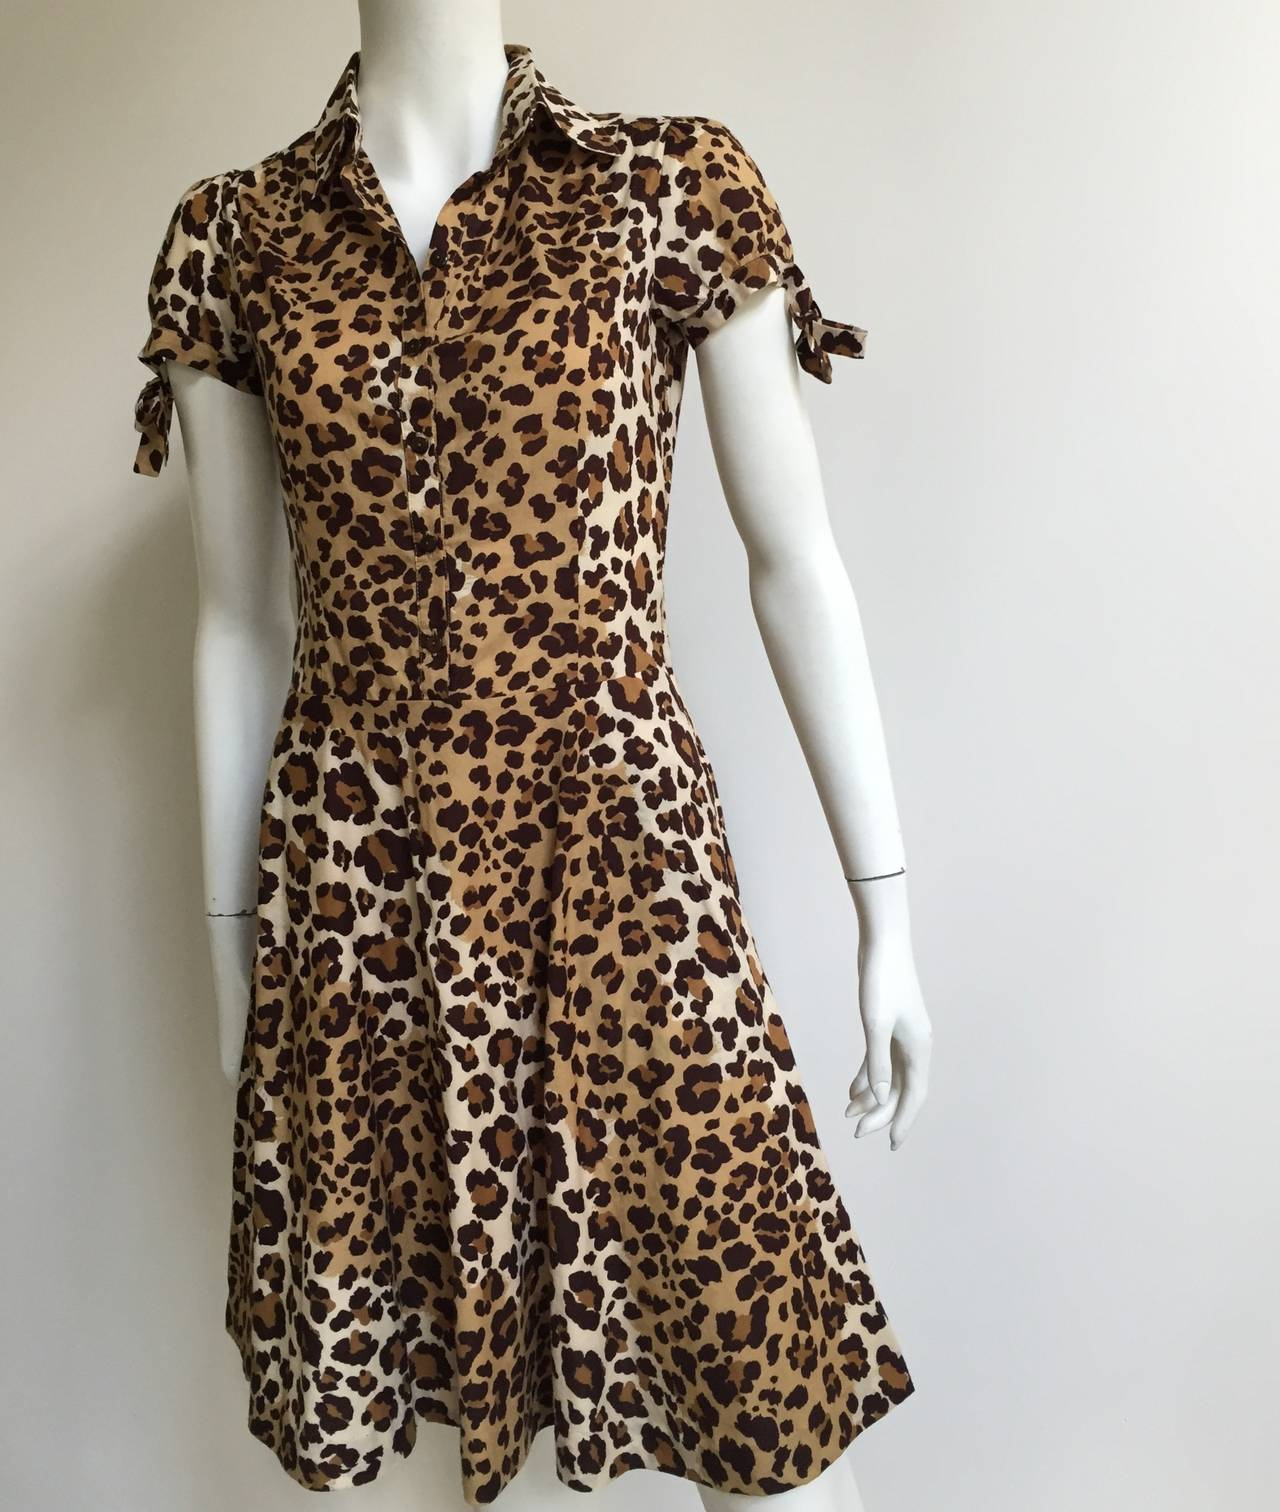 Moschino cheetah print dress with pockets size 6. 3